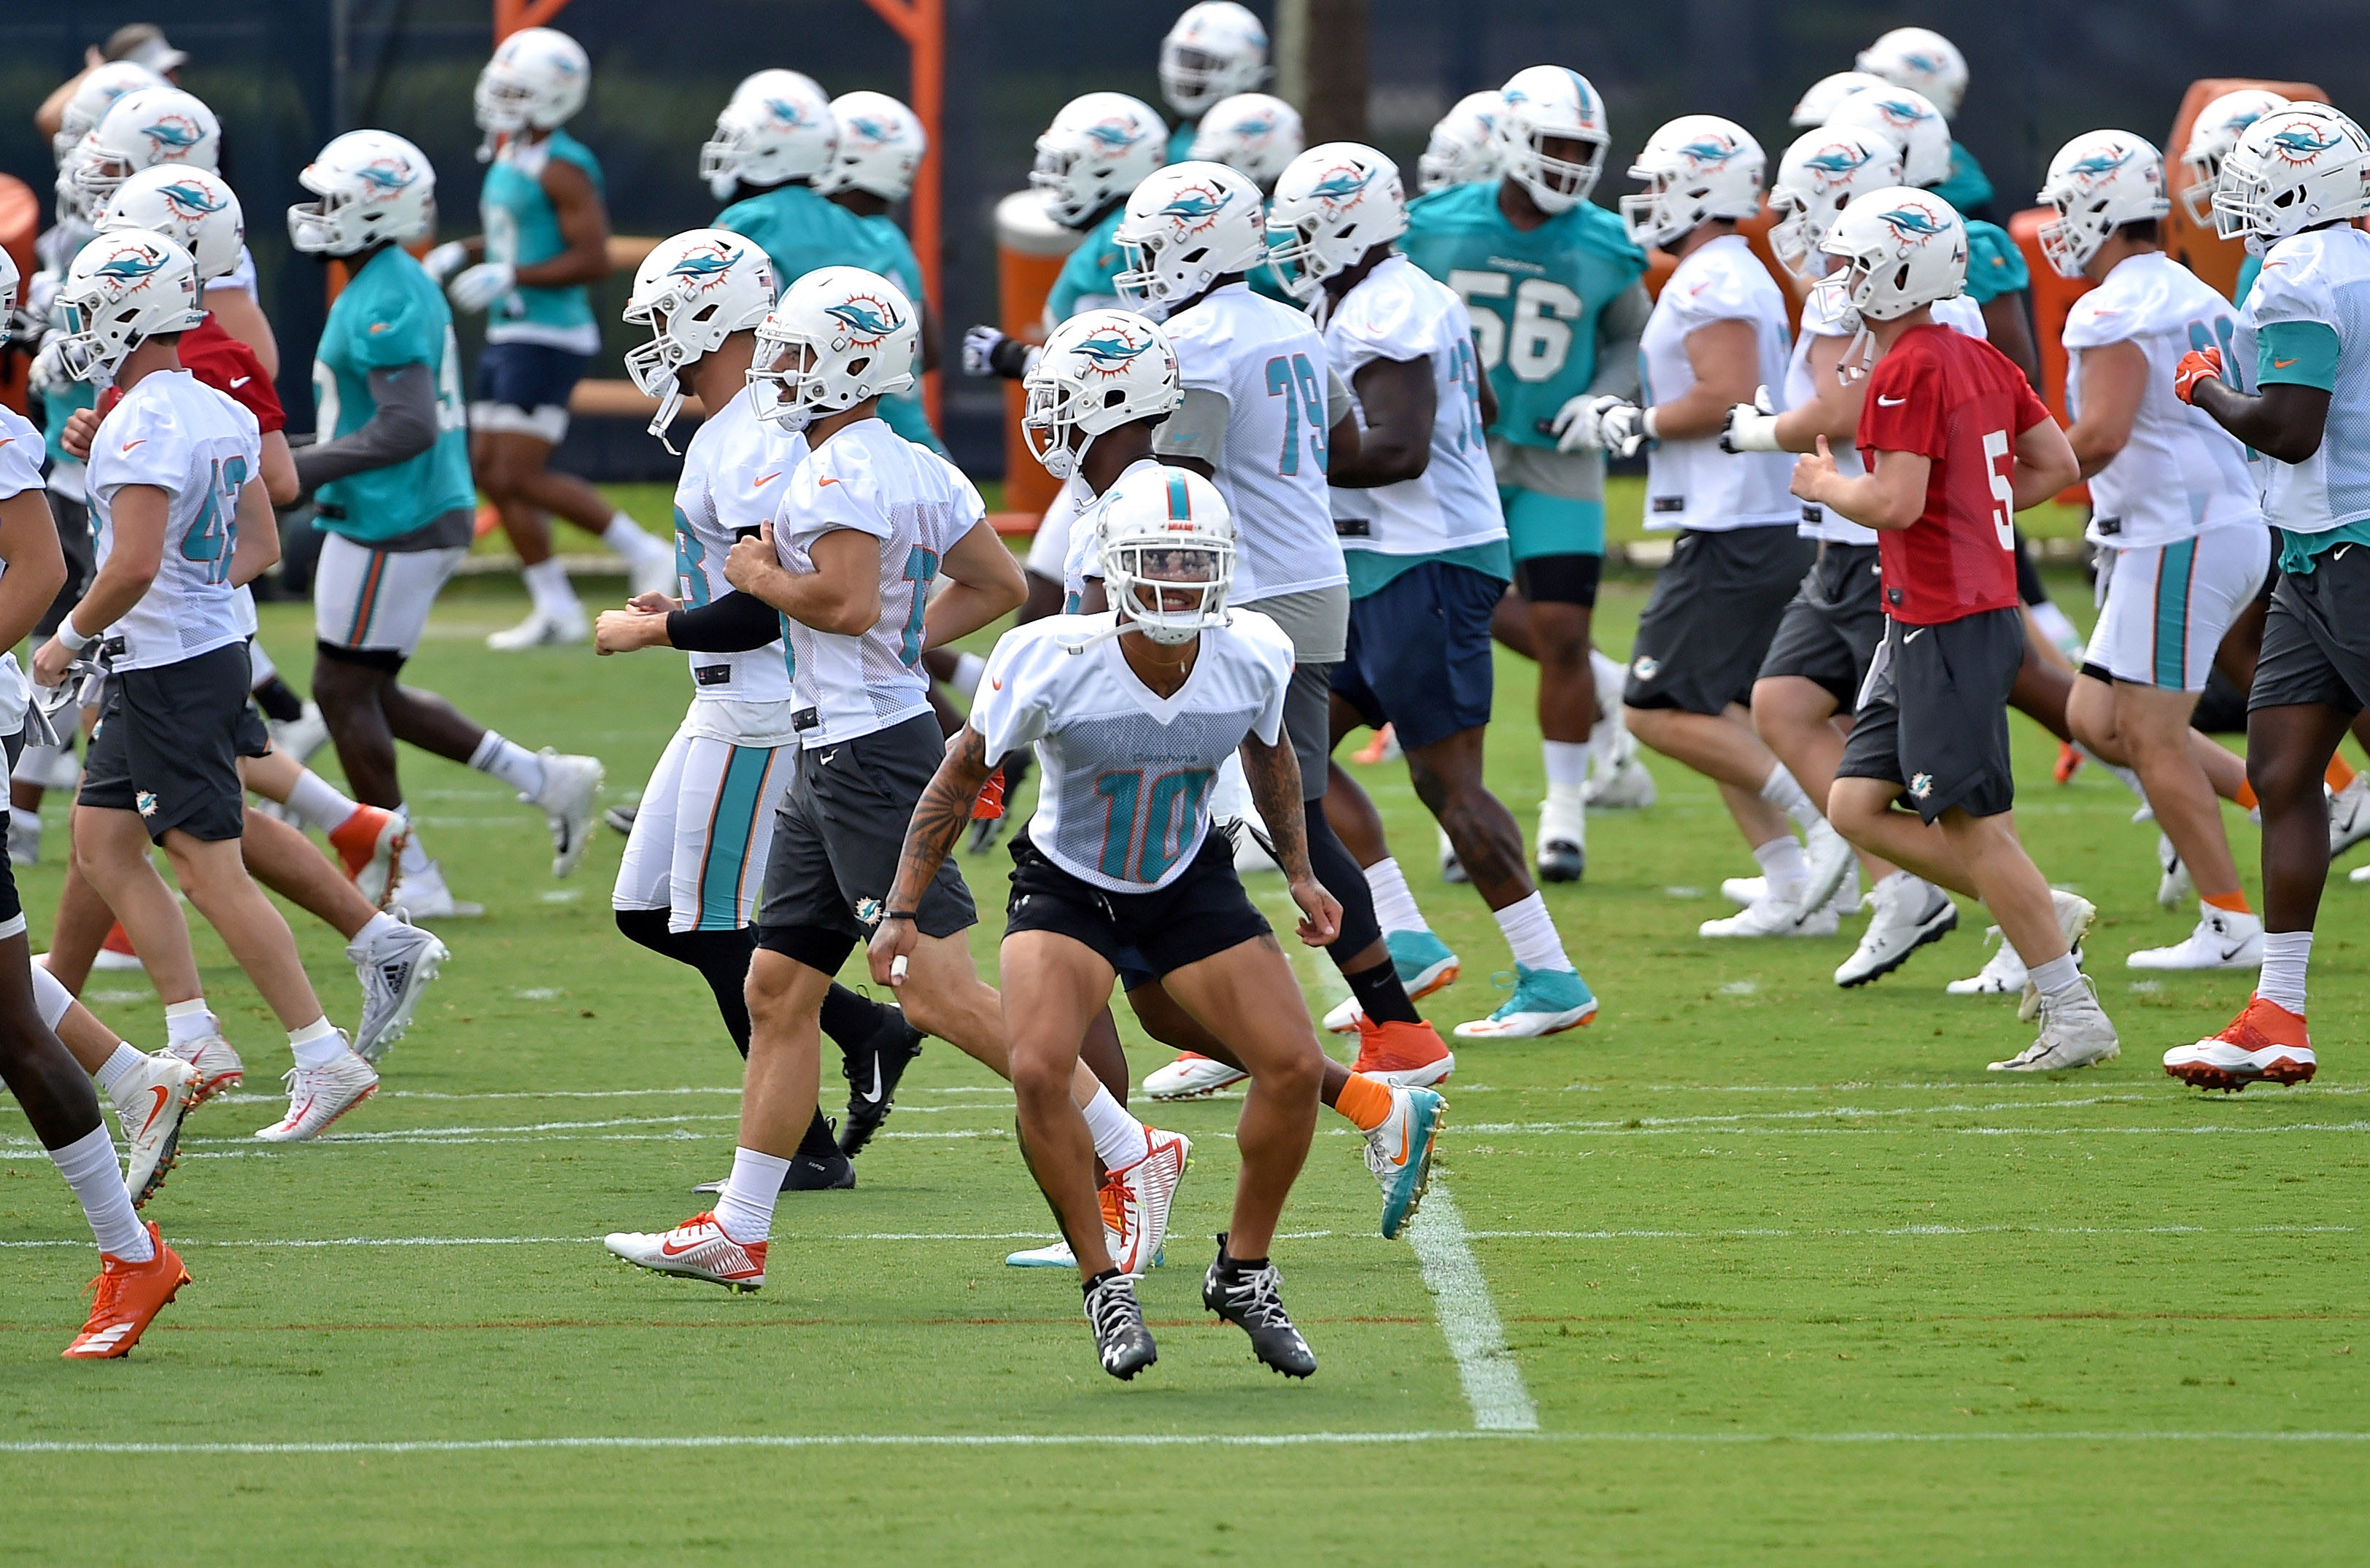 new arrival 52a63 8766f Dolphins depth chart 2019: OTAs update - The Phinsider